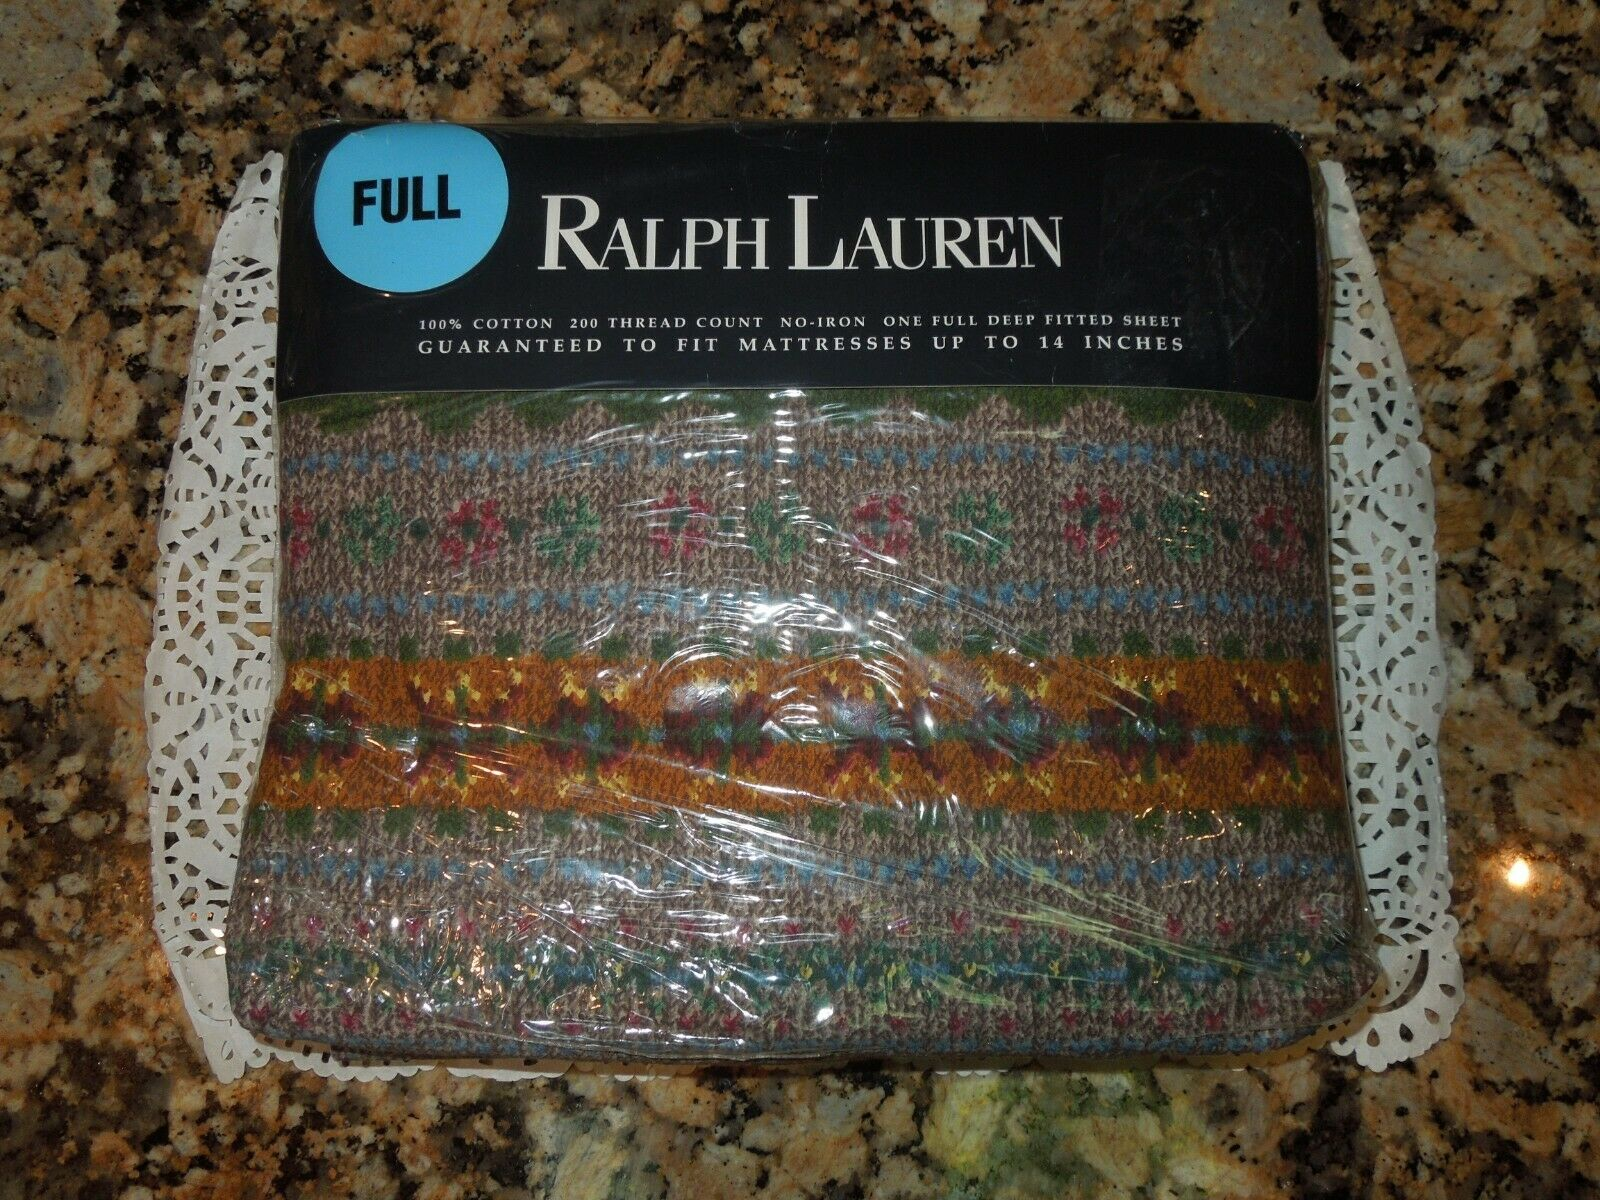 RALPH RALPH RALPH LAUREN LELAND FAIR MULTI FULL FITTED SHEET-NEW ecfbb9